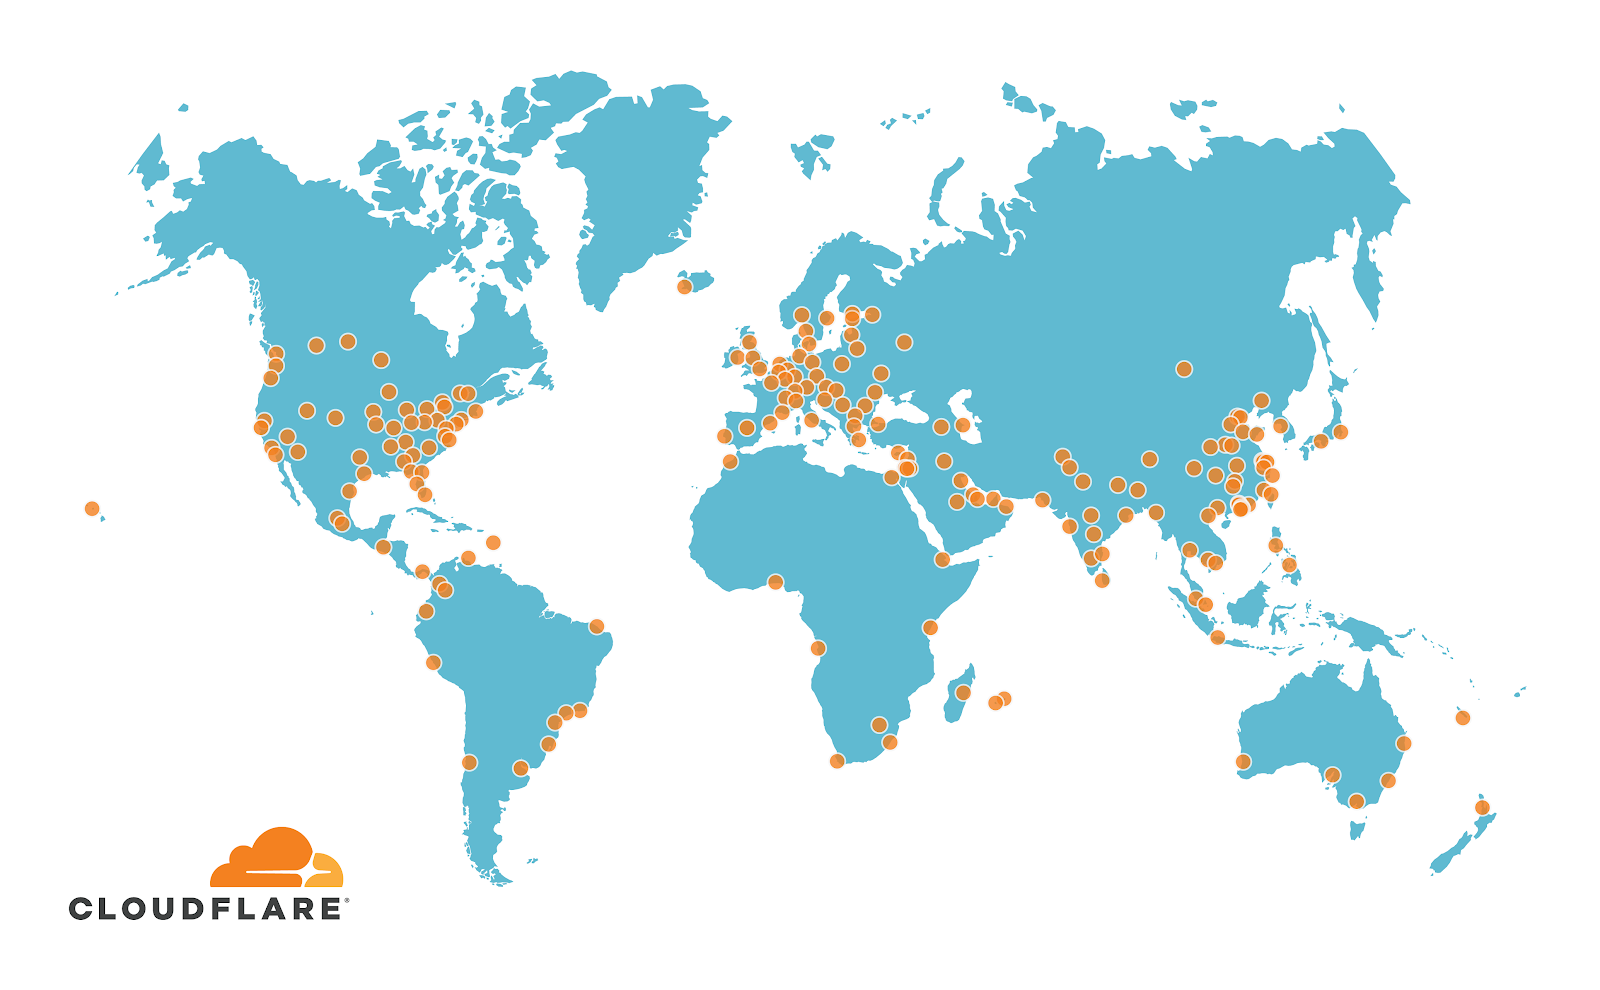 Map of the world with dots denoting Cloudflare's geographically diverse presence in 200 cities